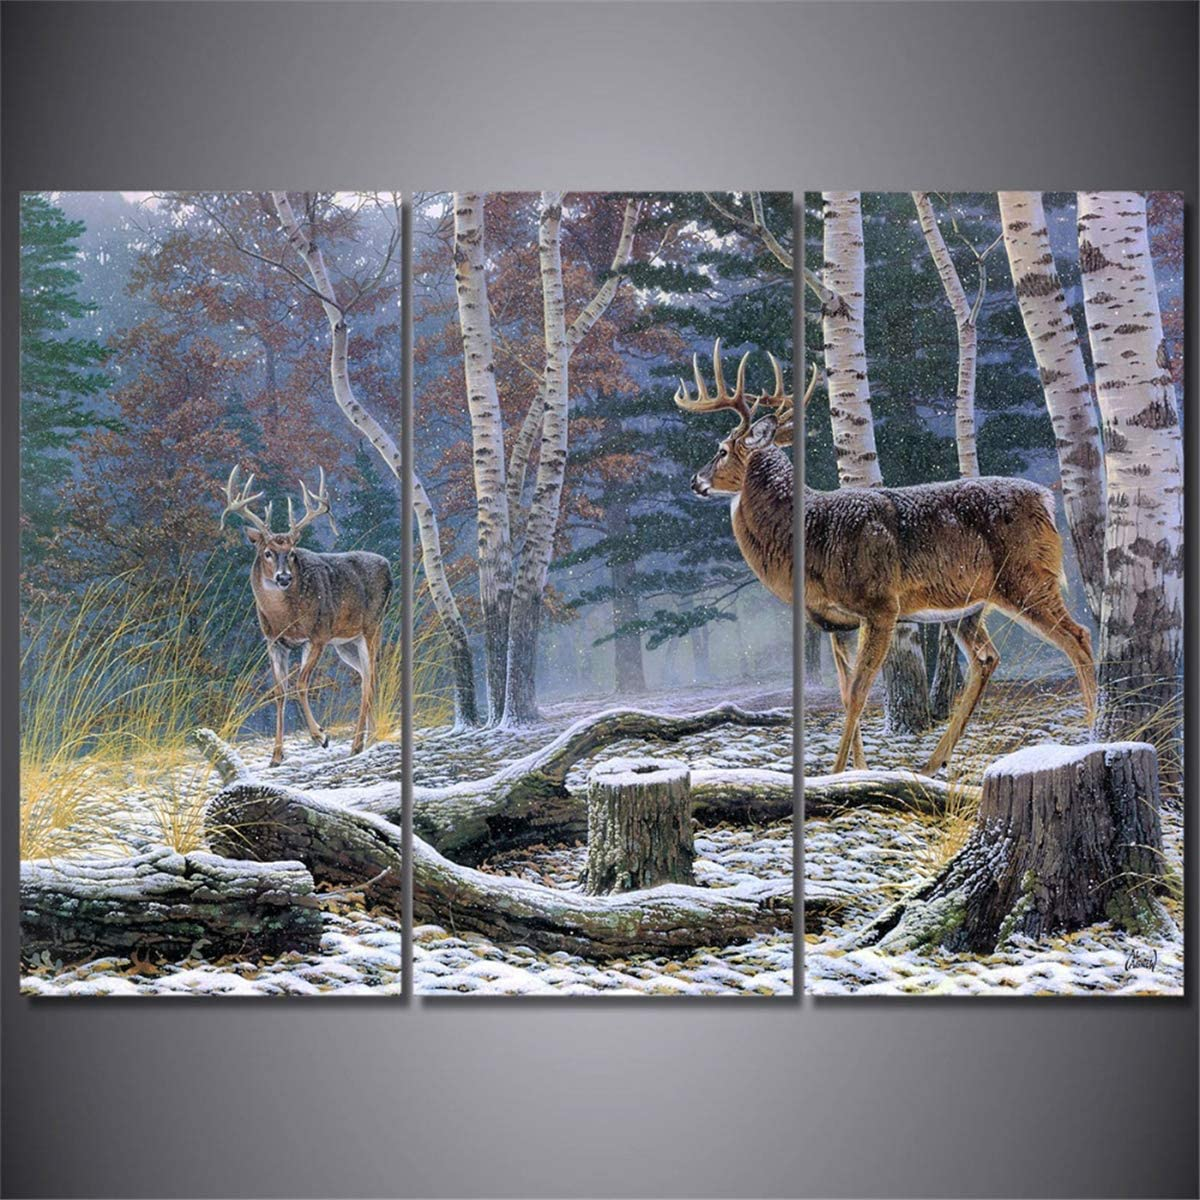 DOLUDO 3 Panel Canvas Wall Art Animal Deer Landscape Painting Modern Picture for Home Decor Living Room Bedroom Ready to Hang